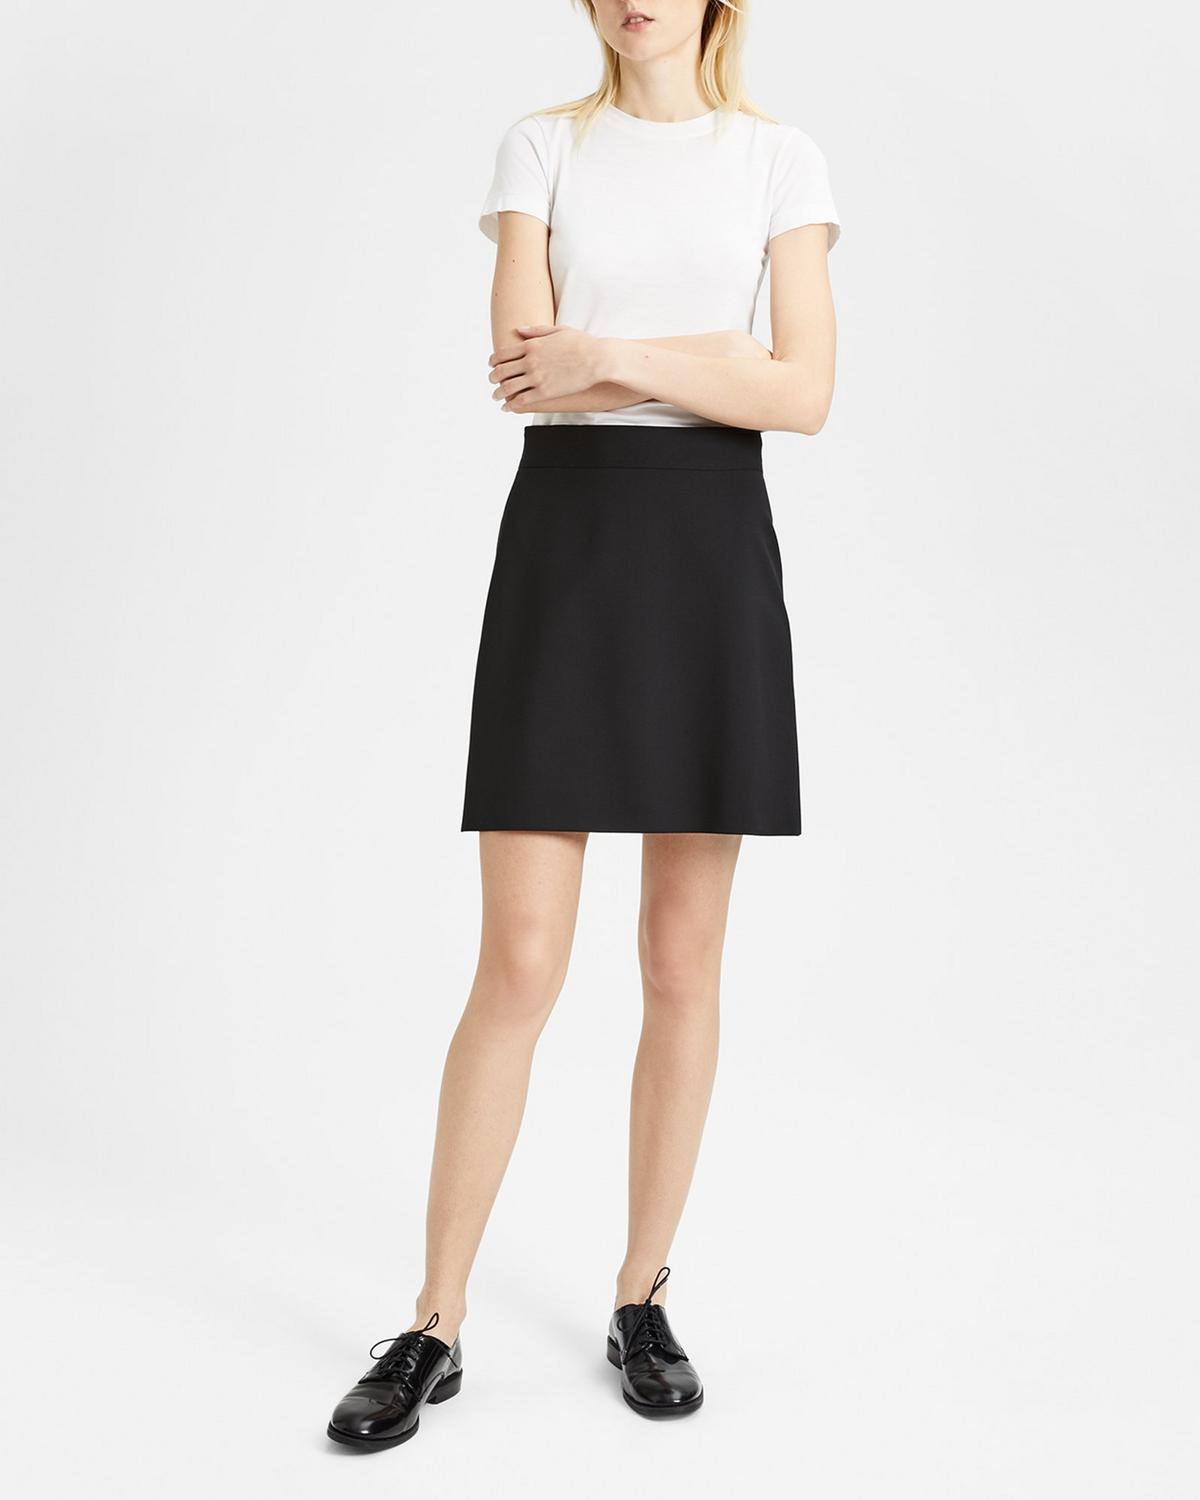 8add95778 Good Wool High-Waisted Mini Skirt 1 - click to view larger image ...